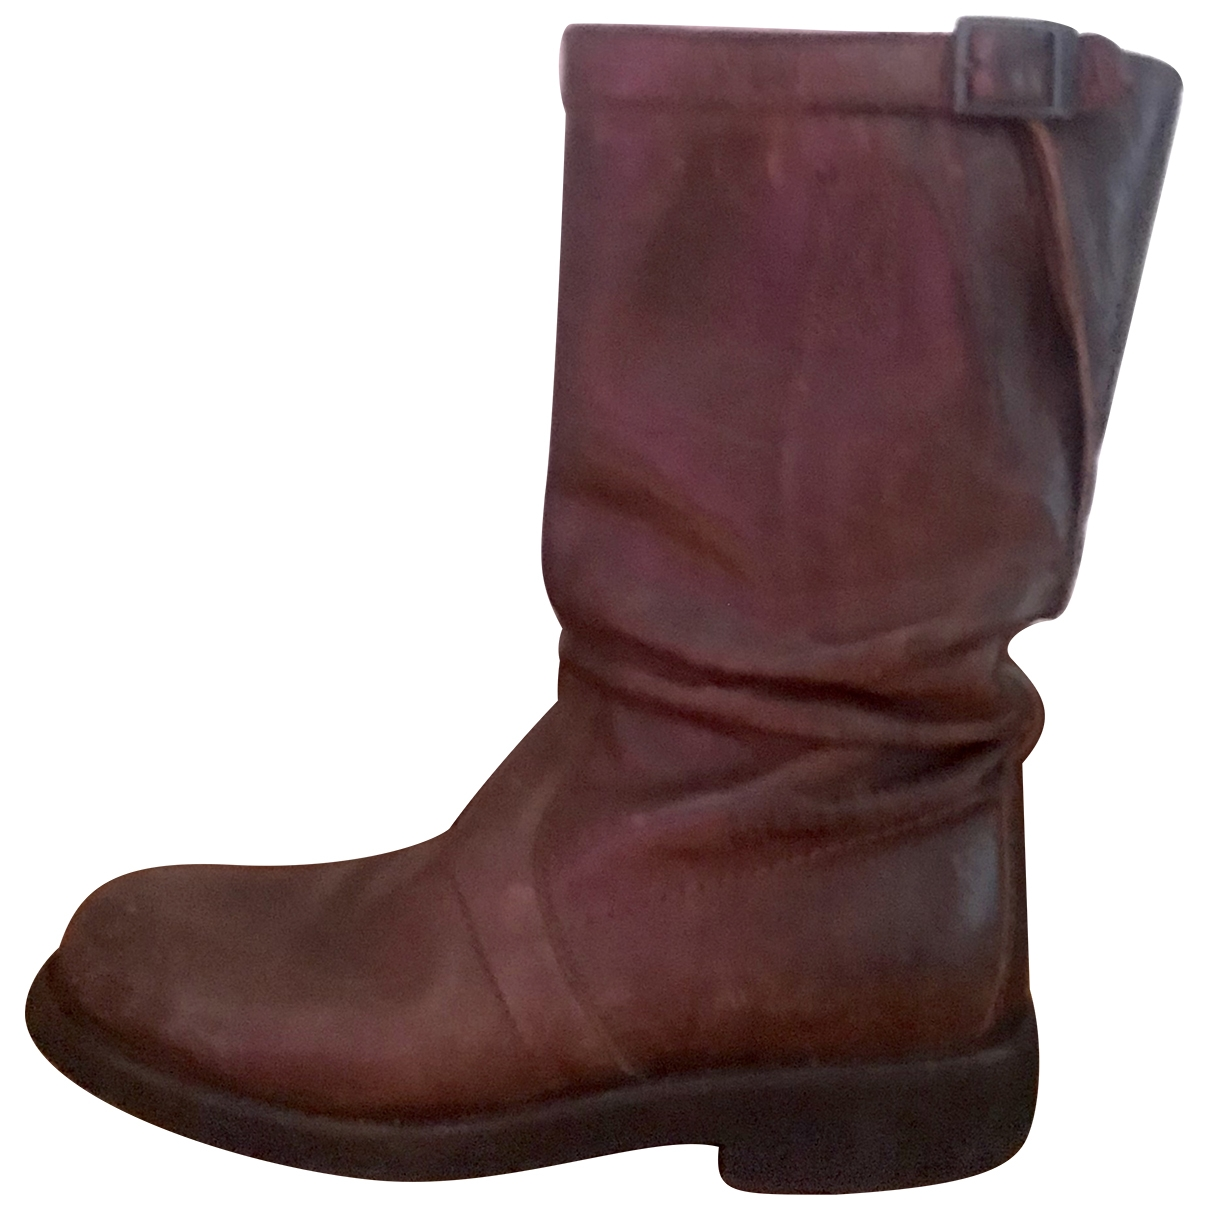 Dirk Bikkembergs \N Brown Leather Boots for Women 36 EU